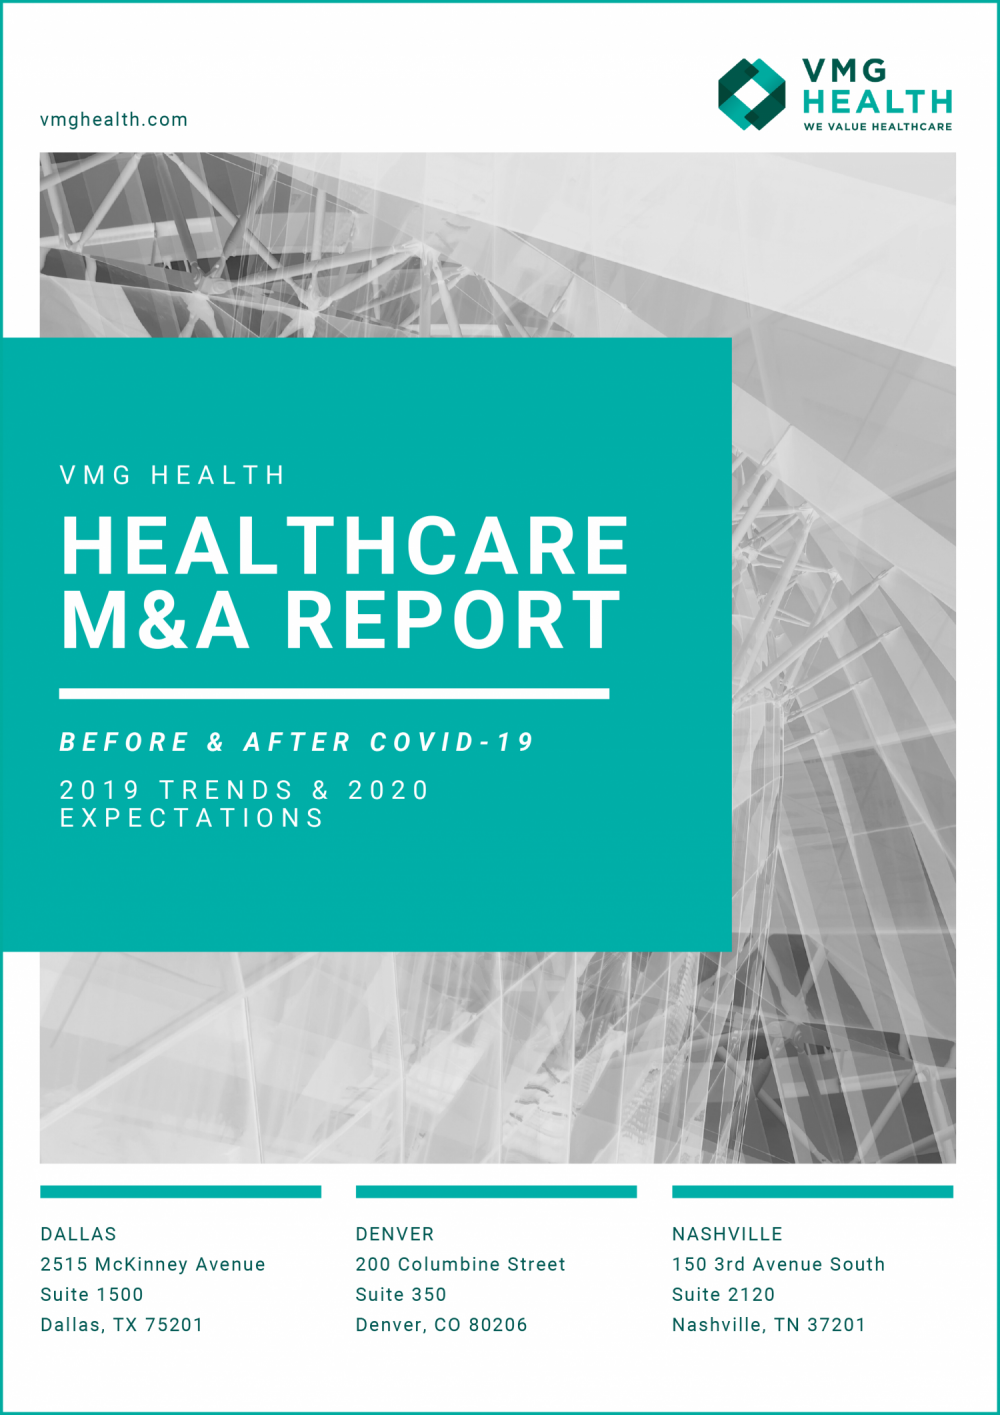 Healthcare M&A Report: 2019 Trends & 2020 Expectations Before & After COVID-19